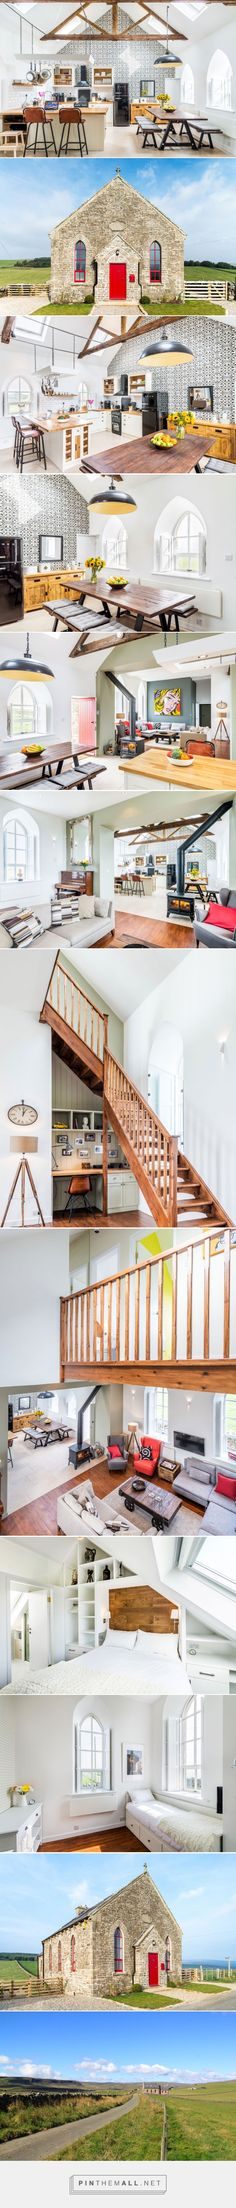 evolution design converts chapel into quaint holiday home in england - created via http://pinthemall.net